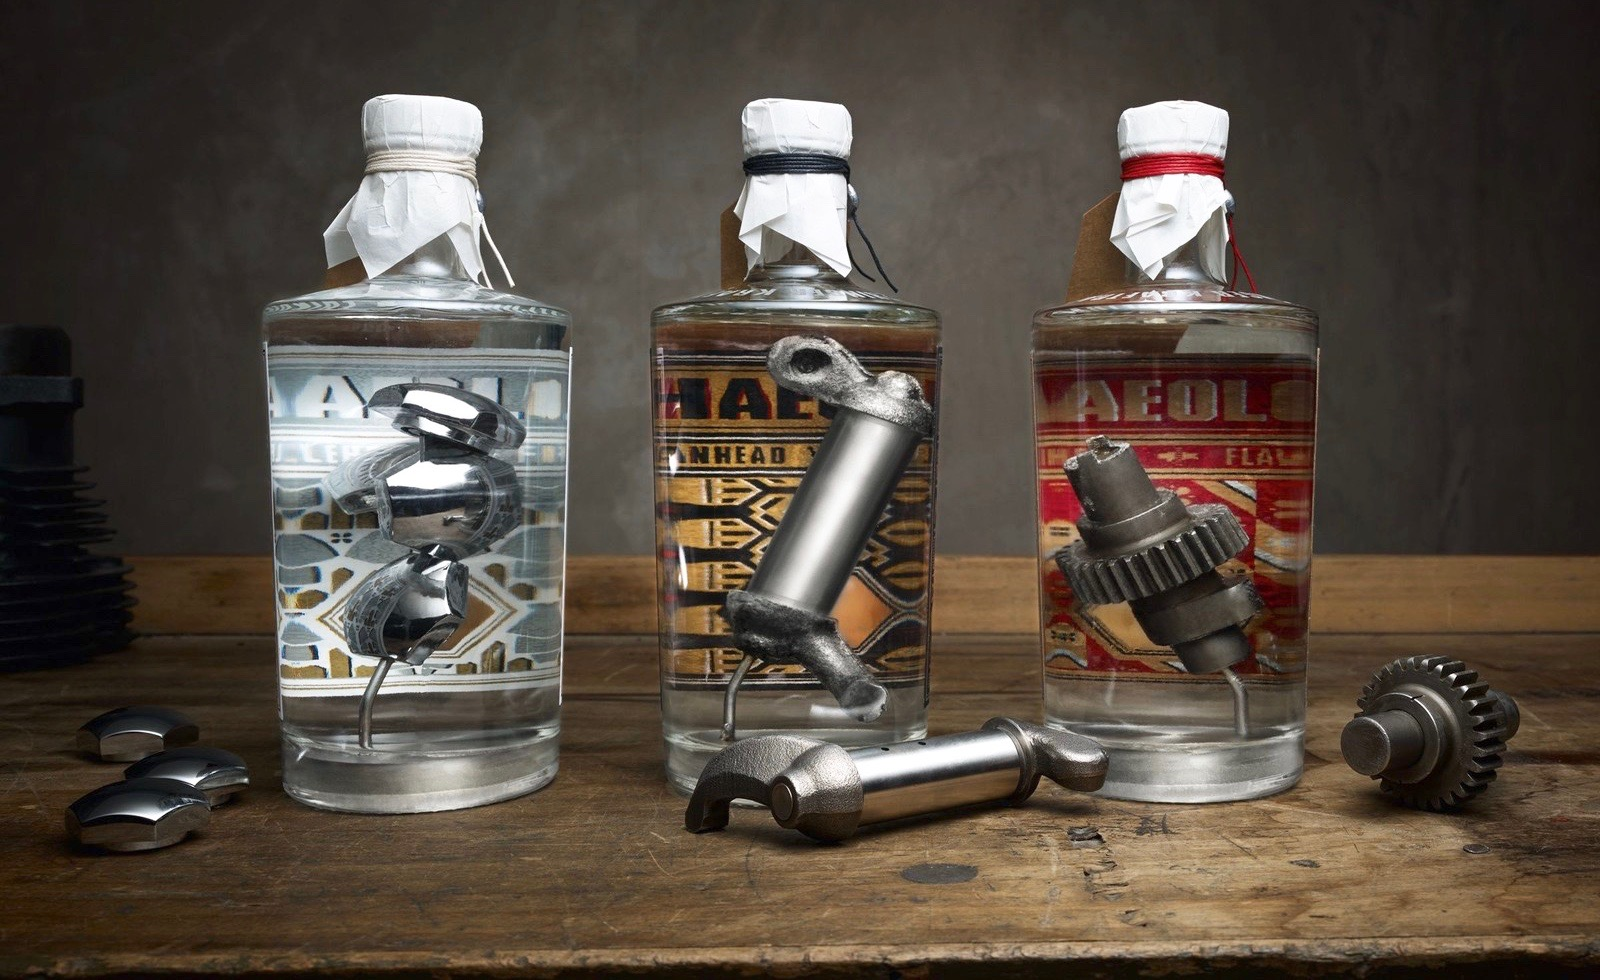 Each gin bottles contains a Harley-Davidson motorcycle engine part | The Archeologist photo